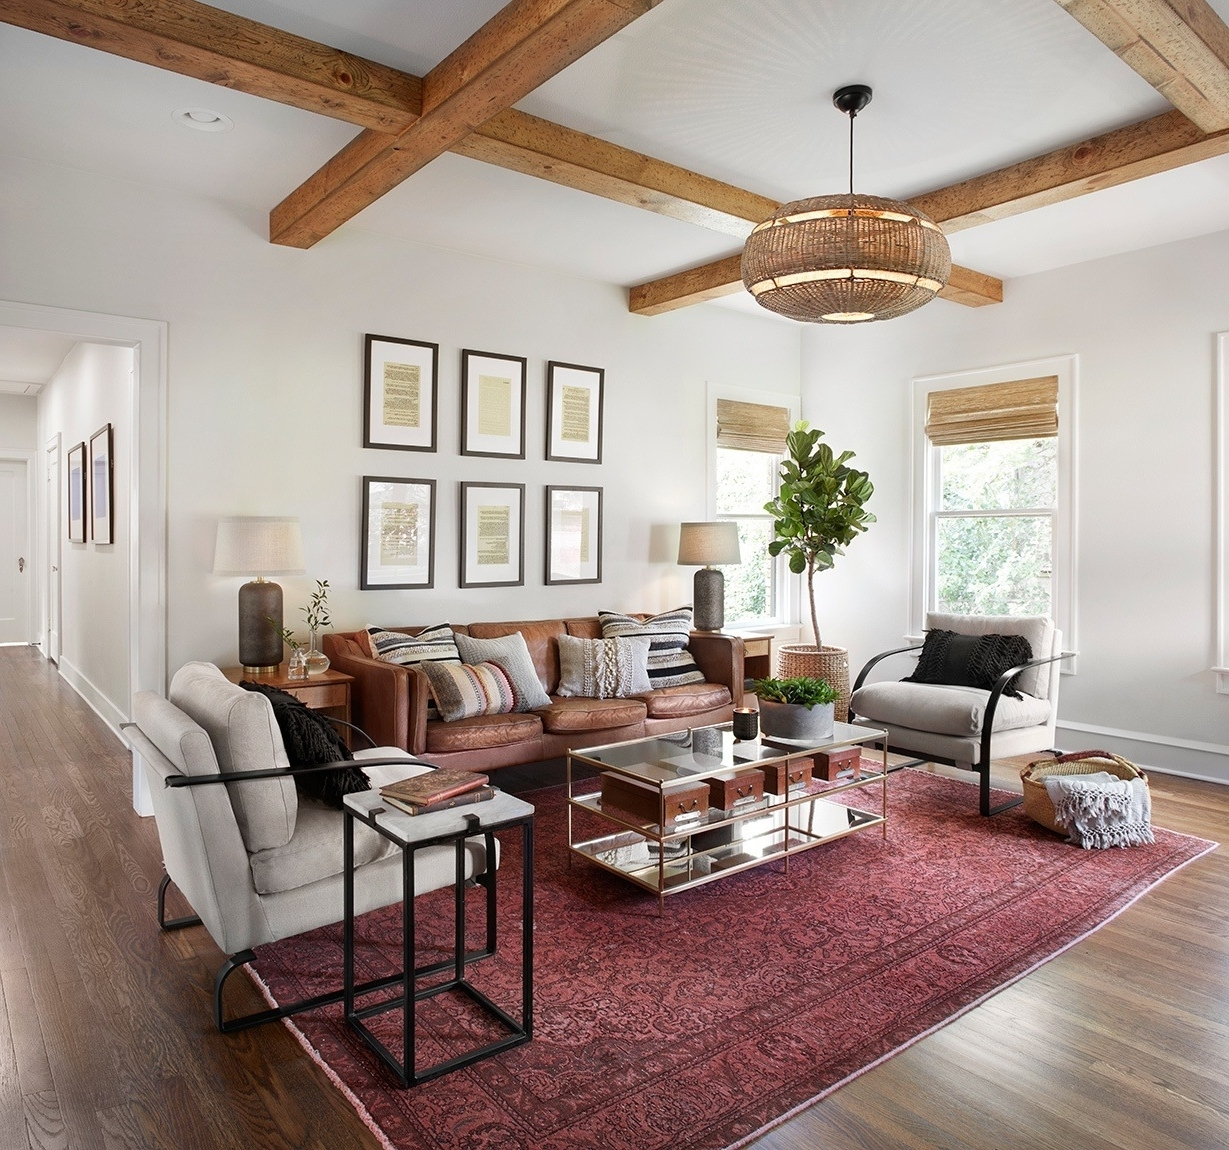 Shockingly Simple Design Rules Joanna Gaines Swearsfor A 20+ Living Room Fixer Upper Inspirations